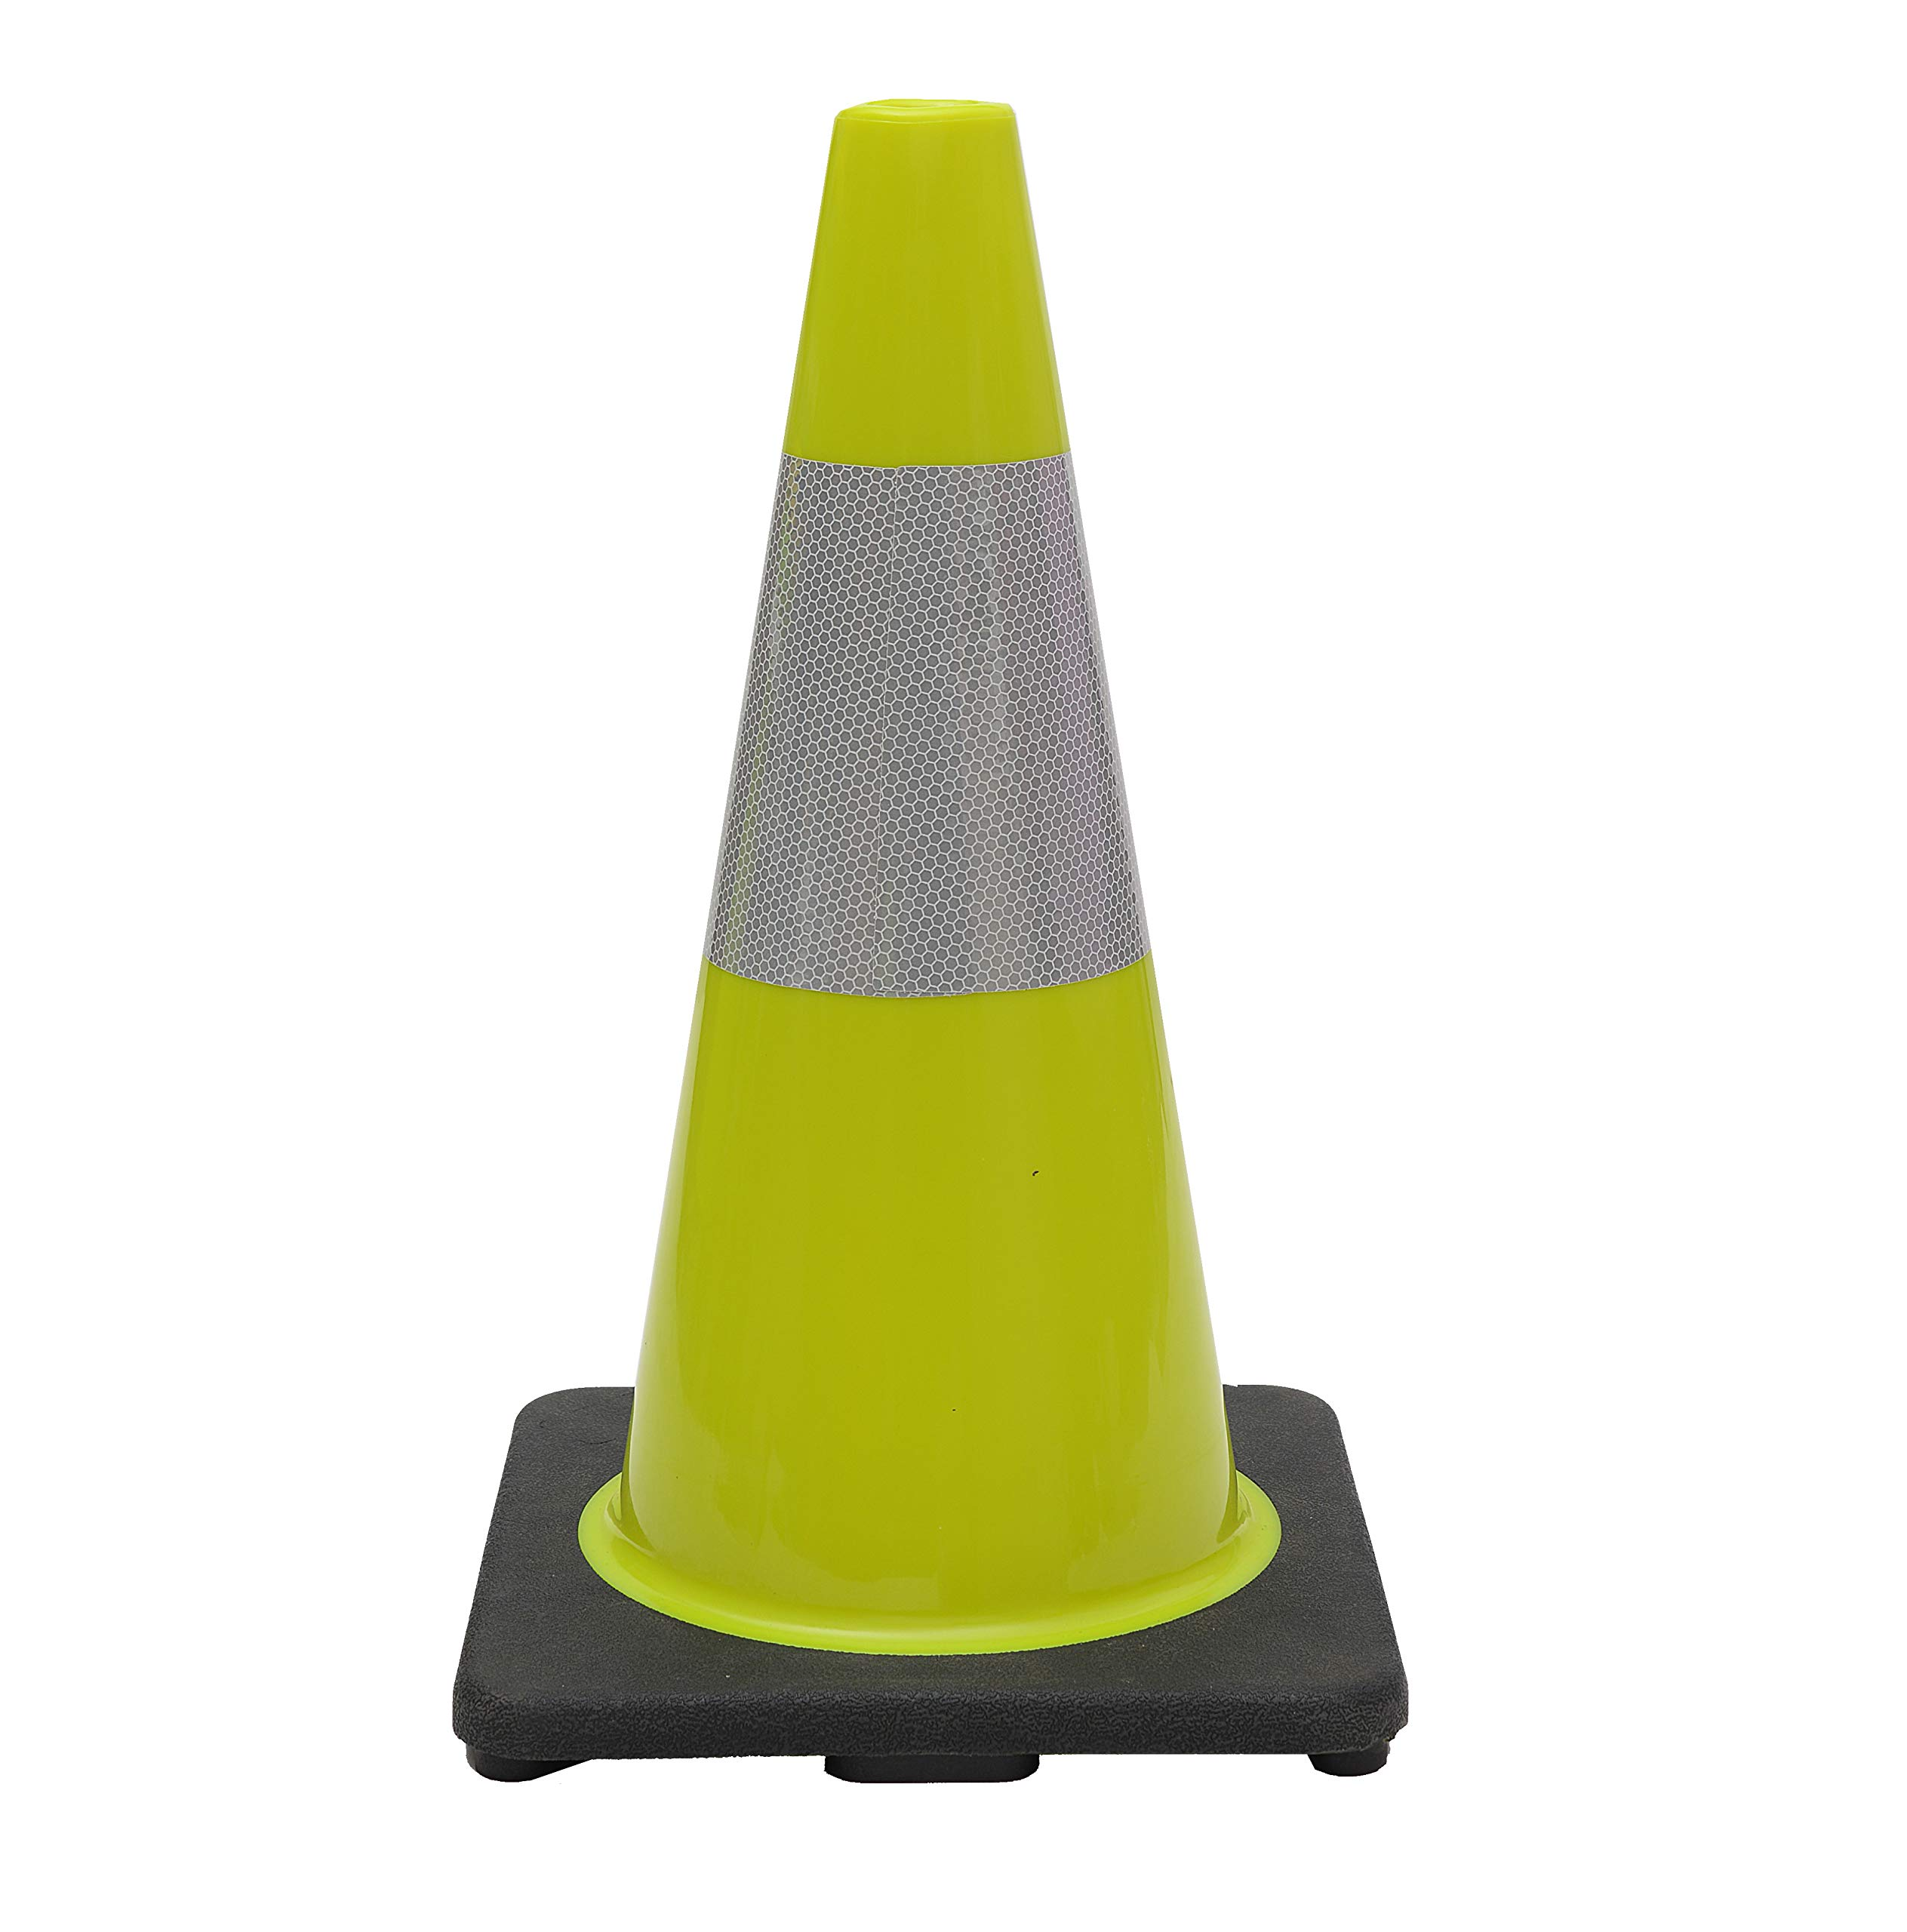 CJ Safety 18'' Black Base Lime Green PVC Traffic Safety Cones with 6' Reflective Collar (6 Cones)